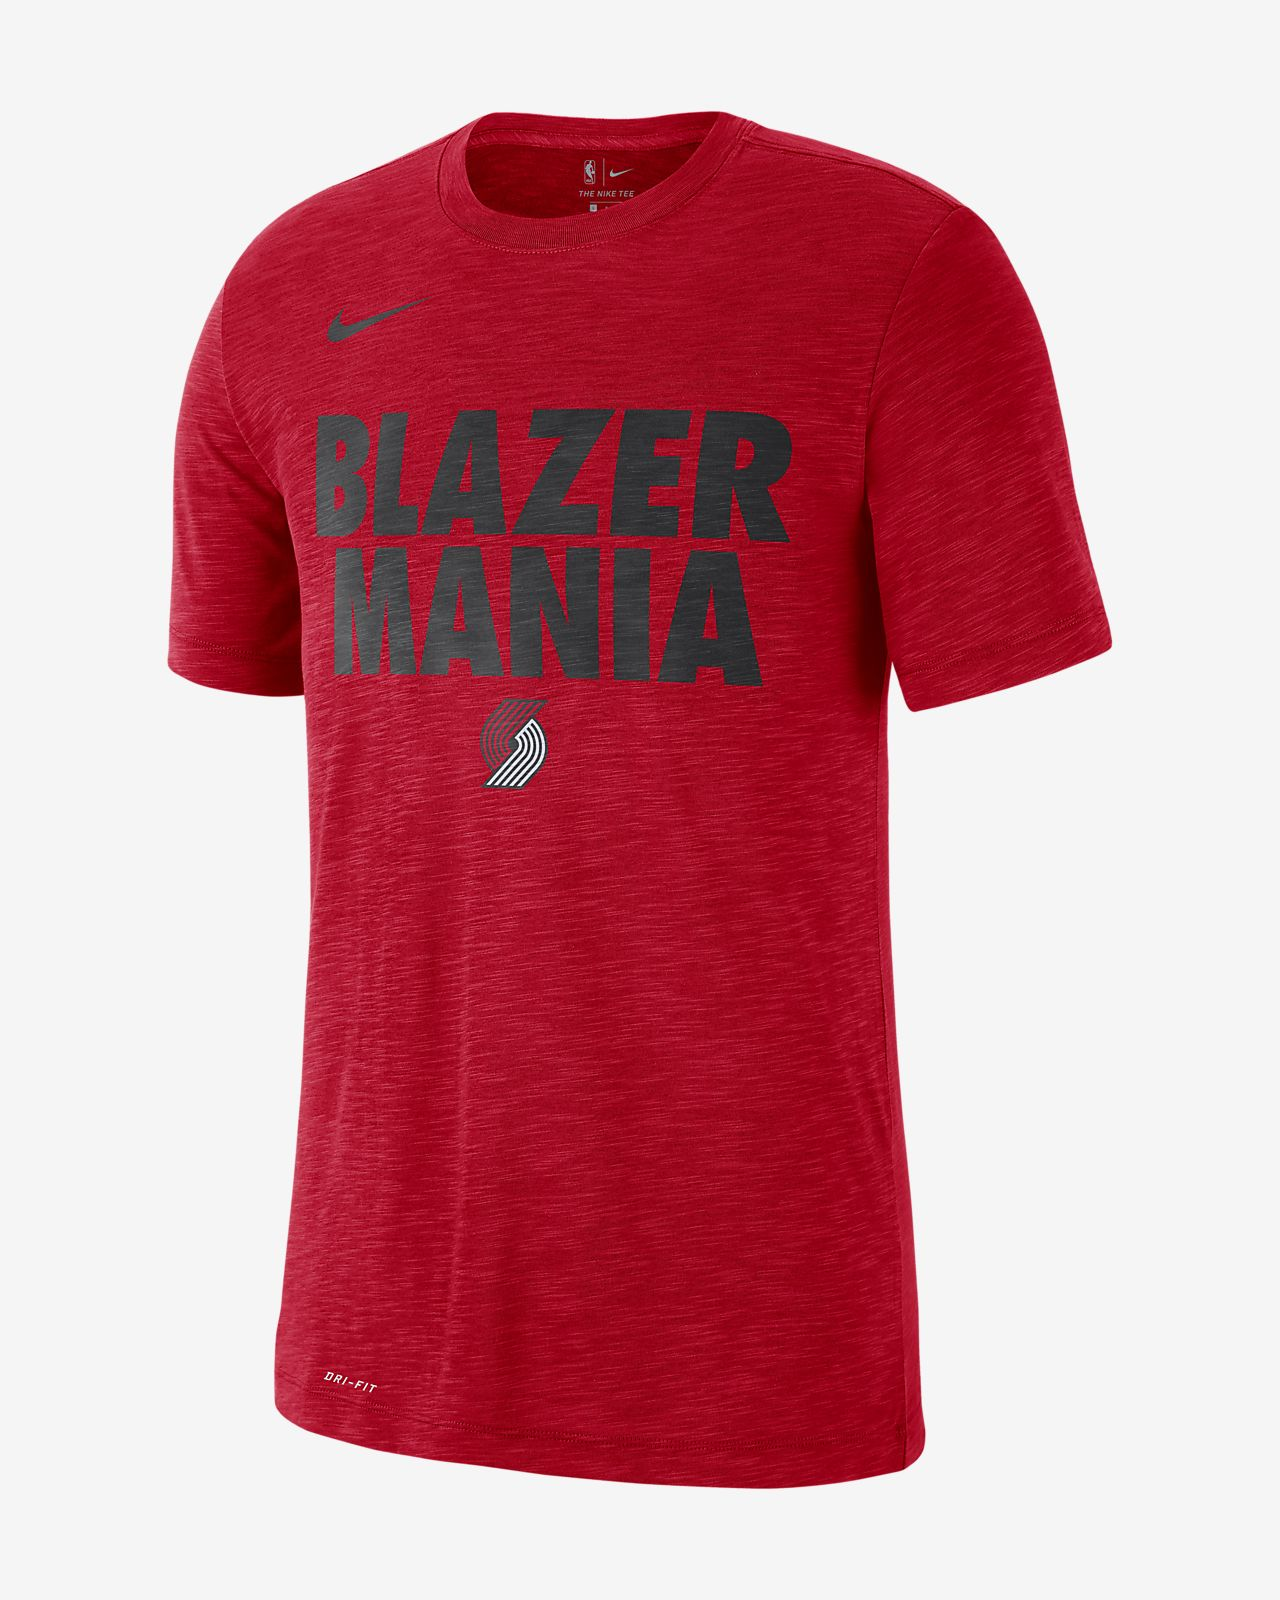 competitive price 2711a d1354 Portland Trail Blazers Nike Dri-FIT Men's NBA T-Shirt